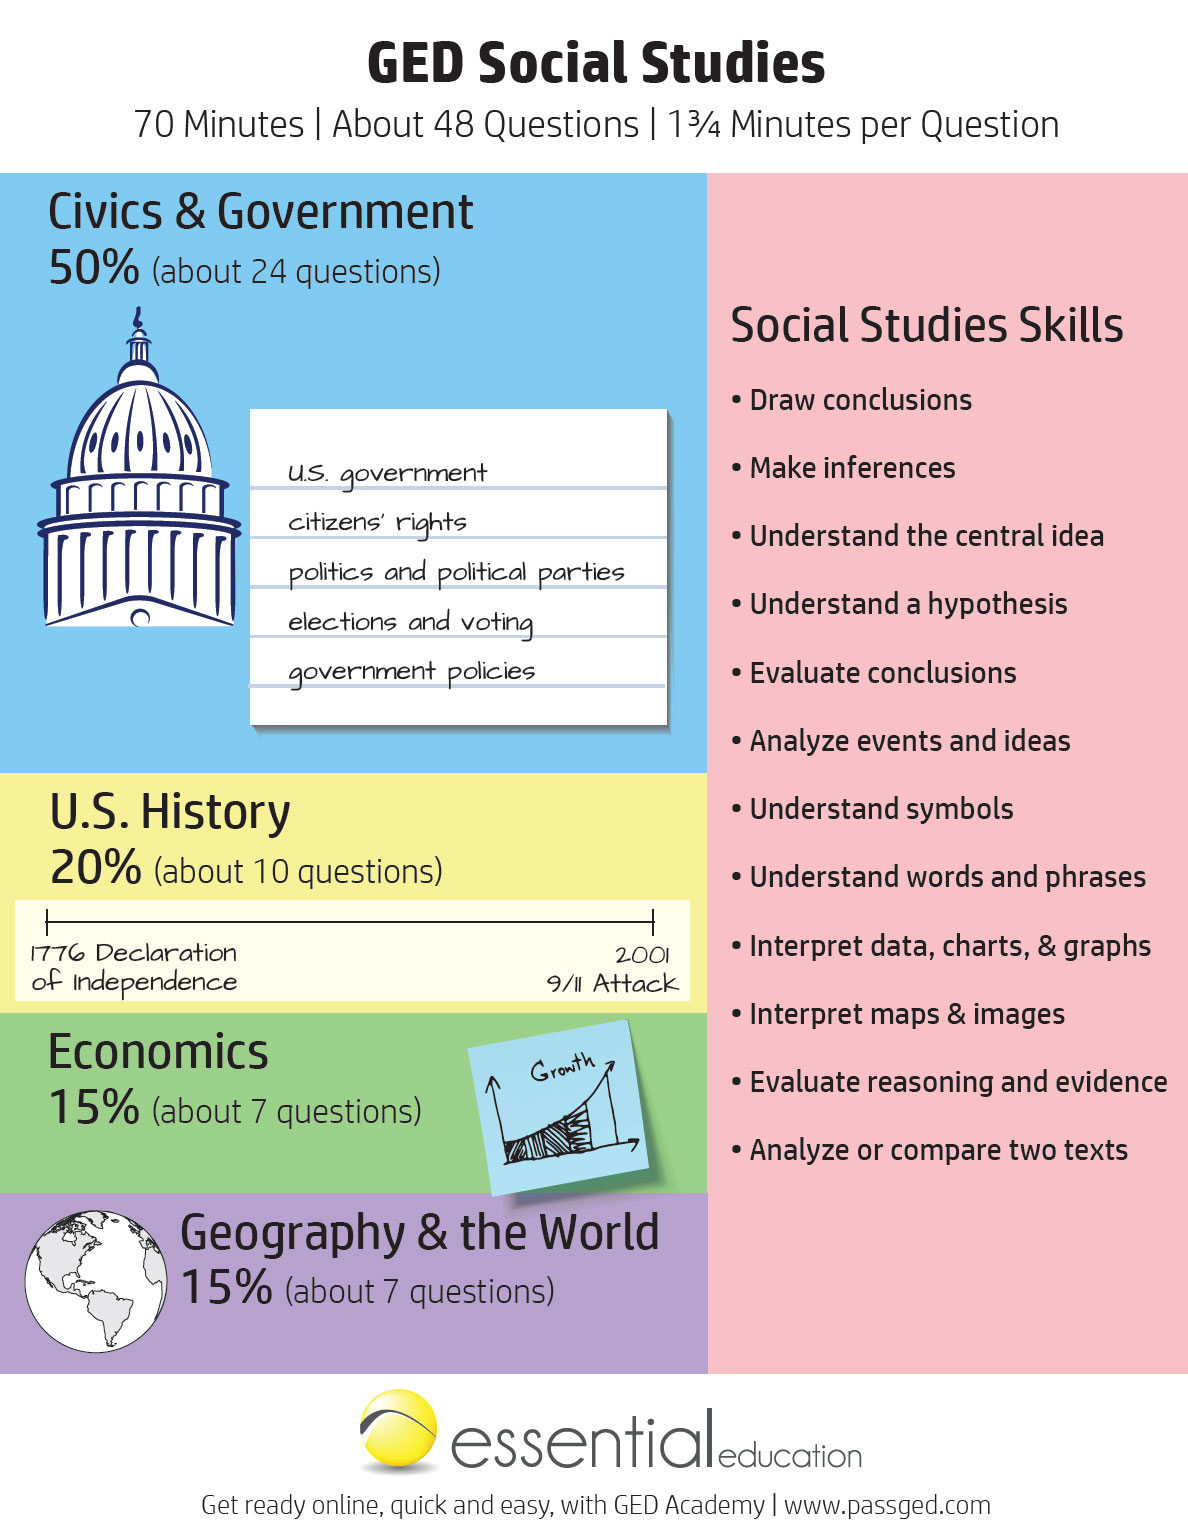 Ged Social Studies Study Guide 2020 [Ged Academy]